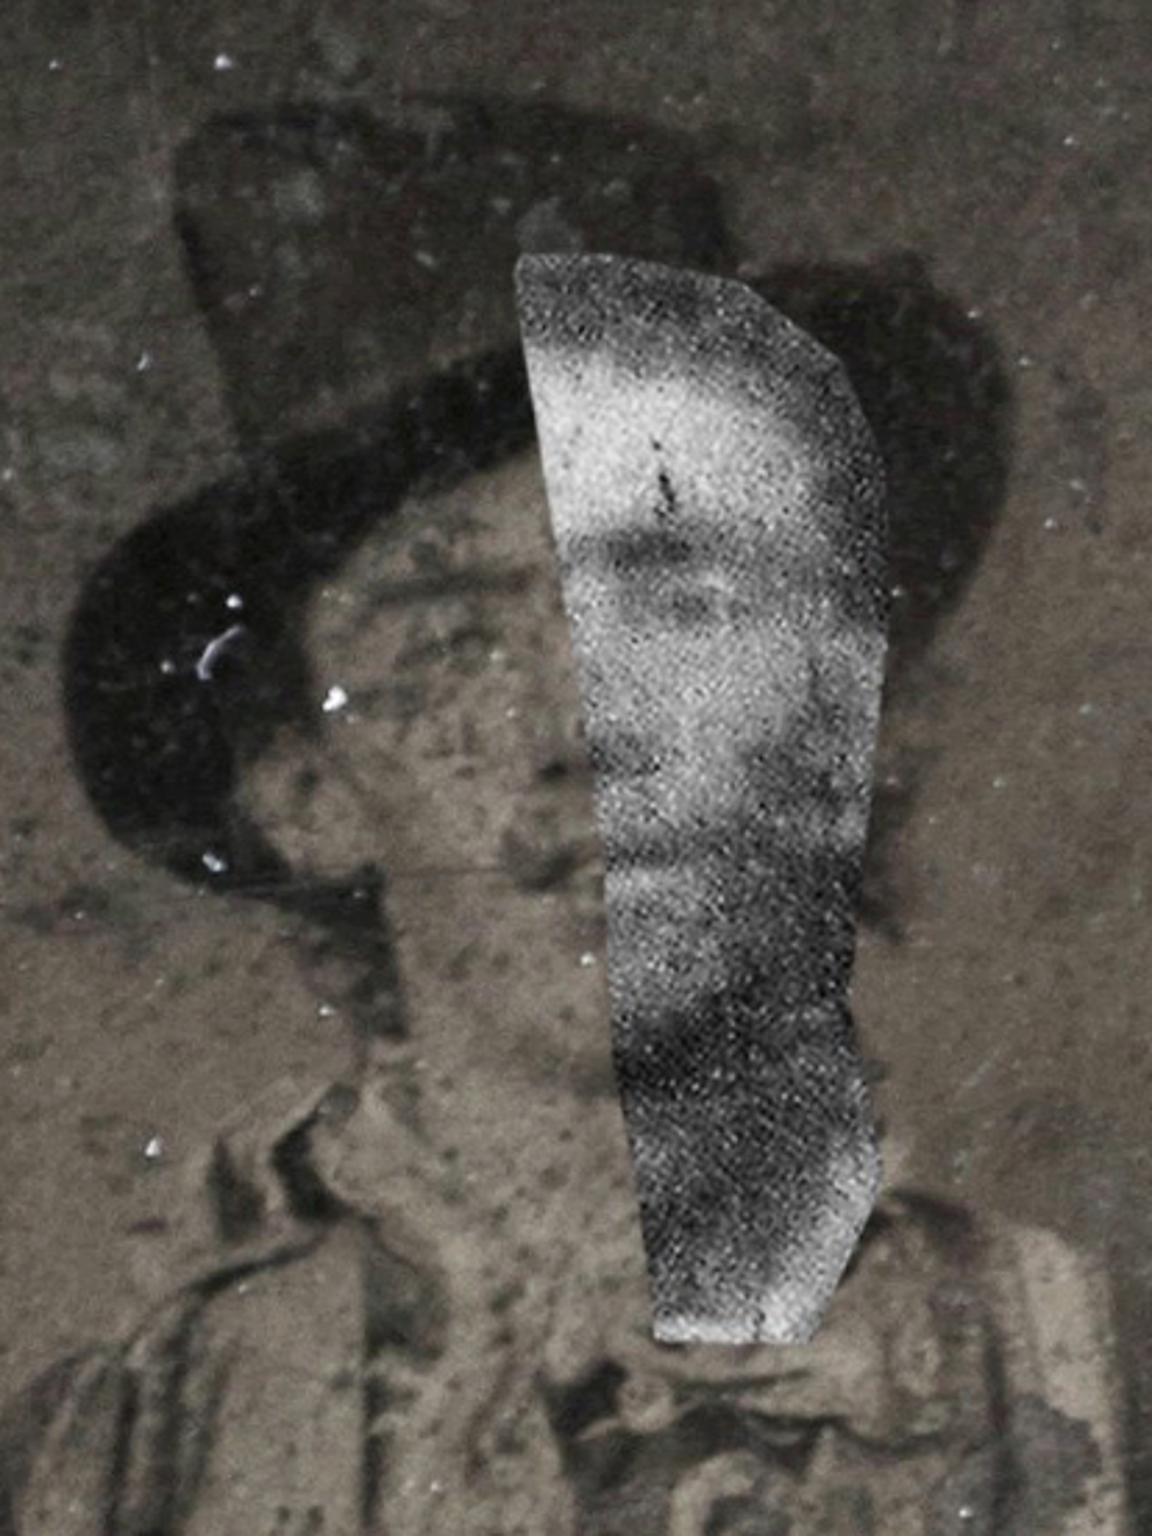 This photo shows the first known photo of Billy the